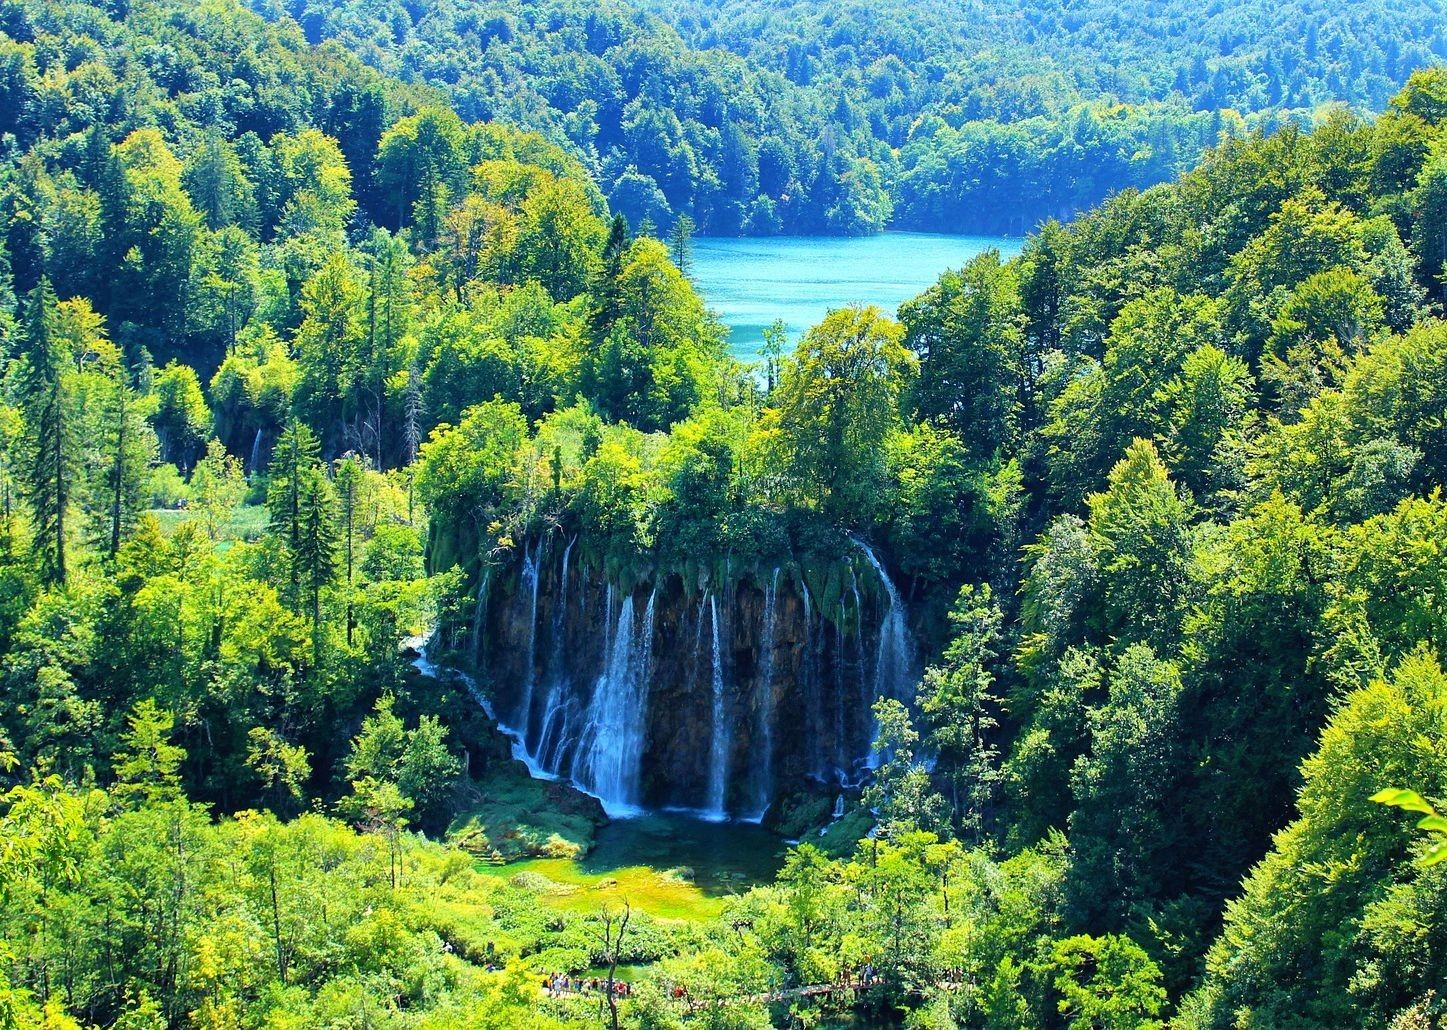 waterfalls-of-krka-canyon-croatia-bike-tour.jpg - Croatia - Dalmatian National Parks and Islands Plus - Bike and Boat Holiday - Leisure Cycling